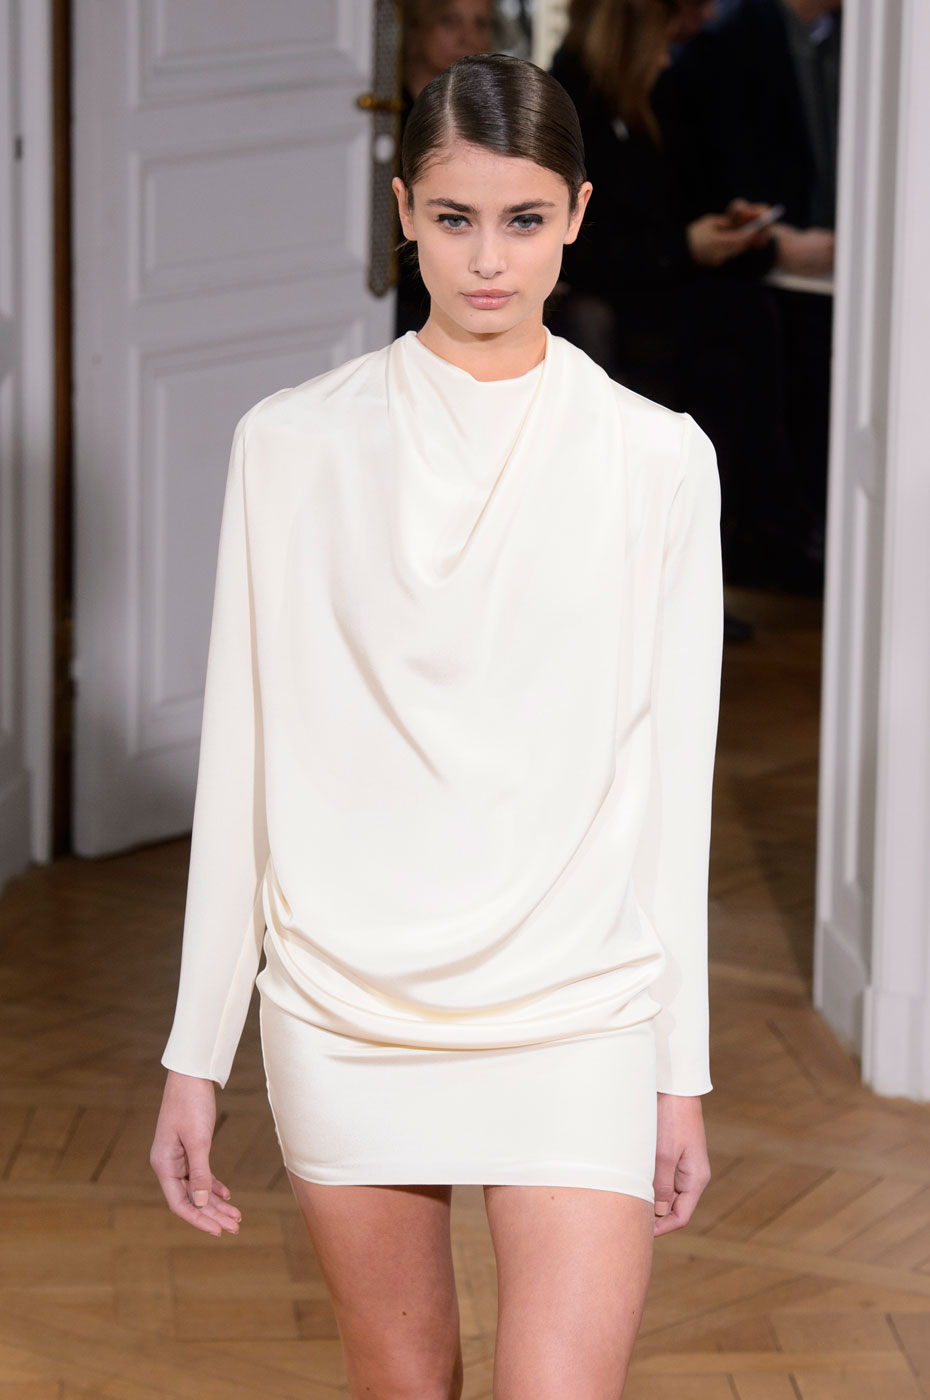 Bouchra-Jarrar-fashion-runway-show-haute-couture-paris-spring-summer-2015-the-impression-46